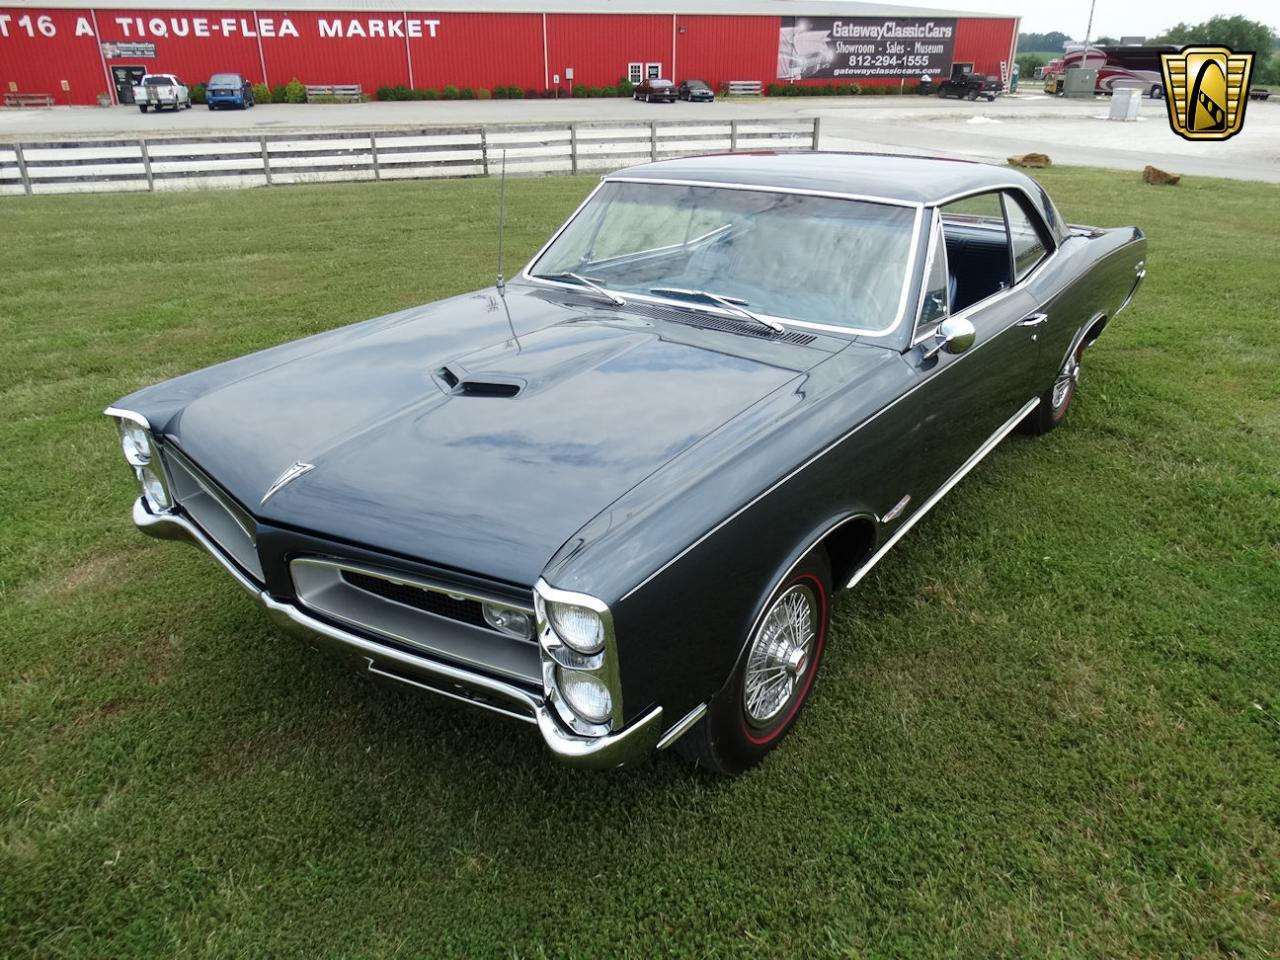 Large Picture of Classic '66 Pontiac GTO - $58,000.00 Offered by Gateway Classic Cars - Louisville - LHK2